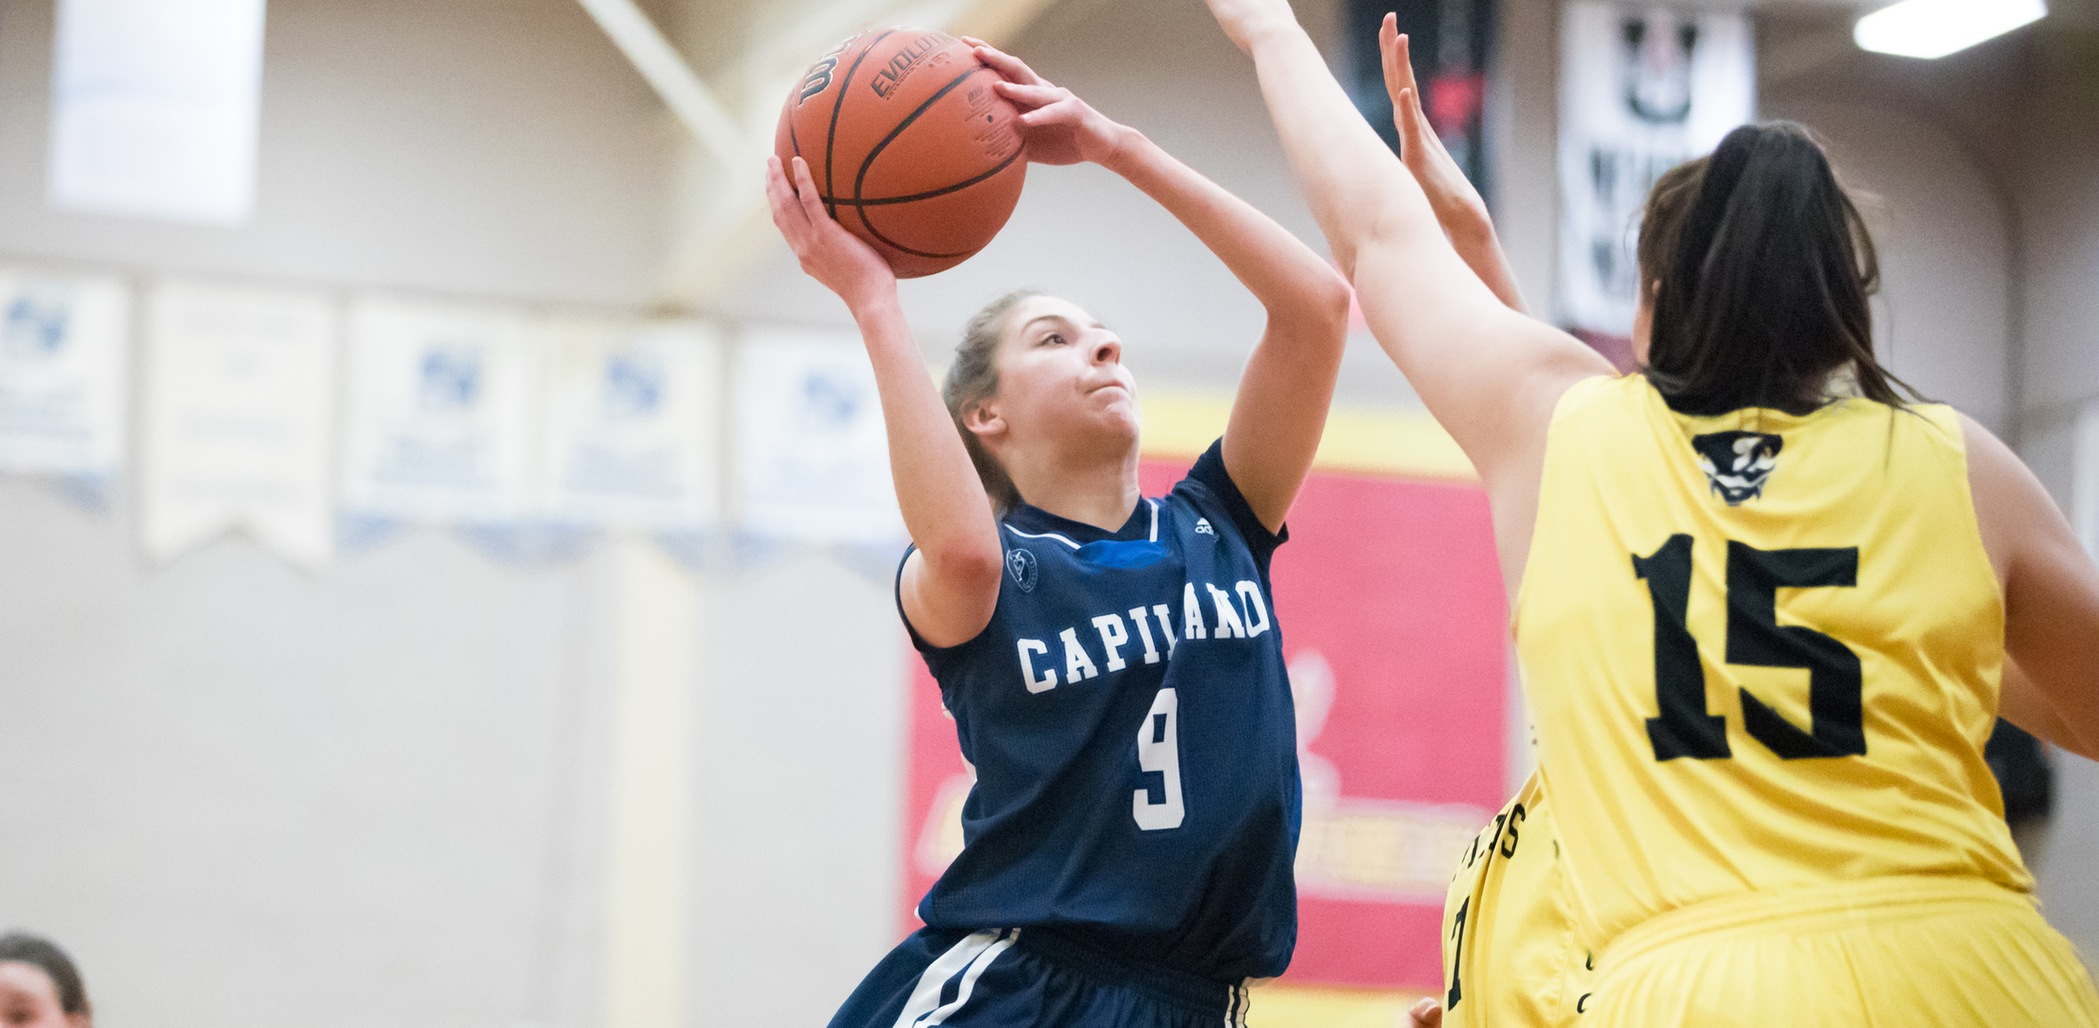 Capilano's fifth-year guard Sherrie Errico. Photo courtesy the CCAA